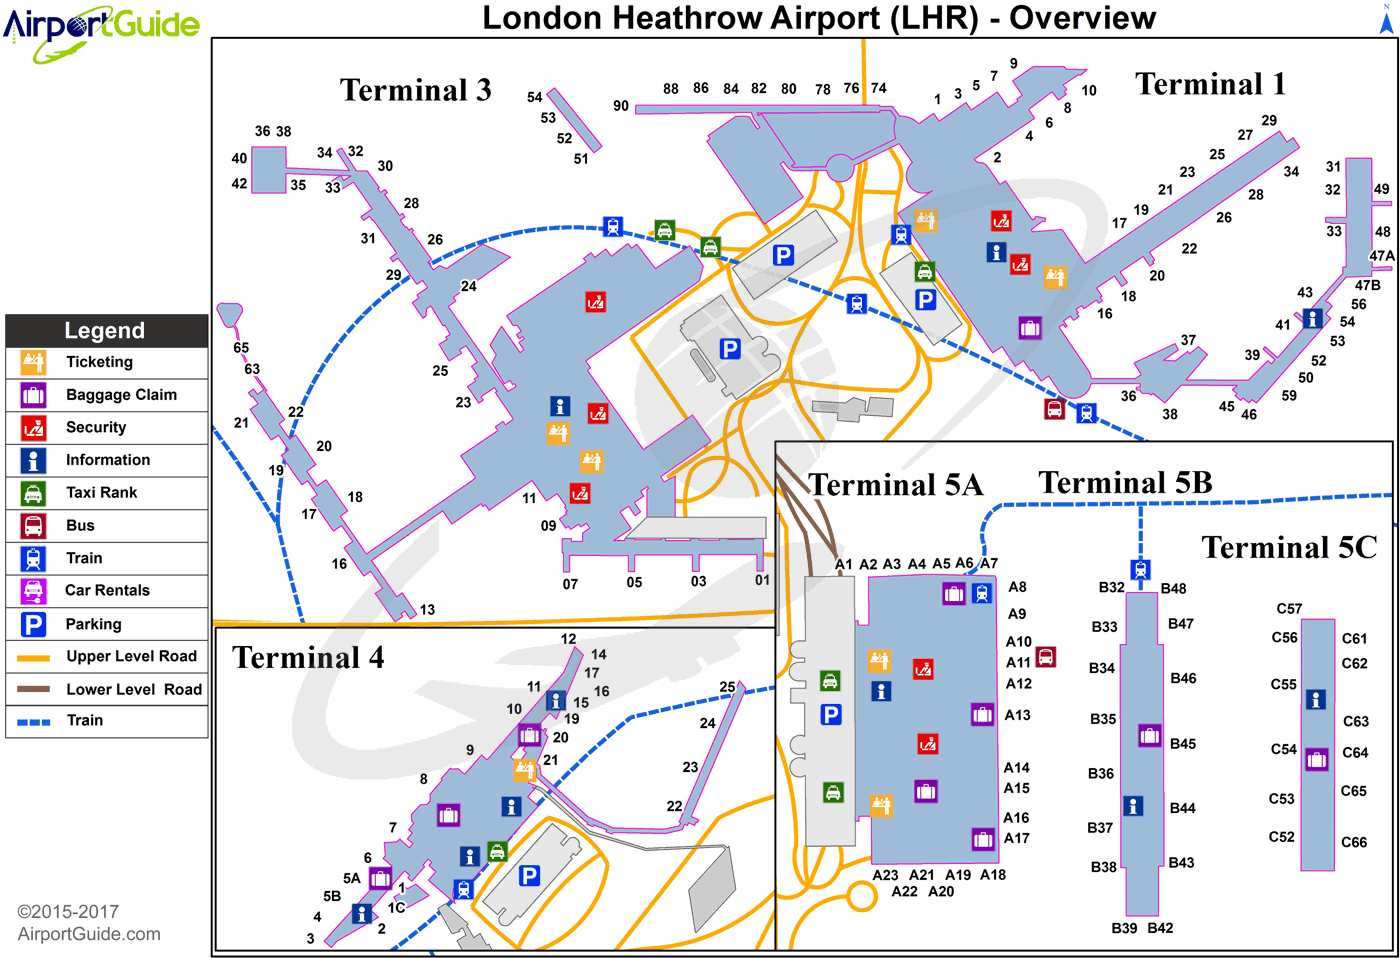 LHR Airport Terminal Map - Overview